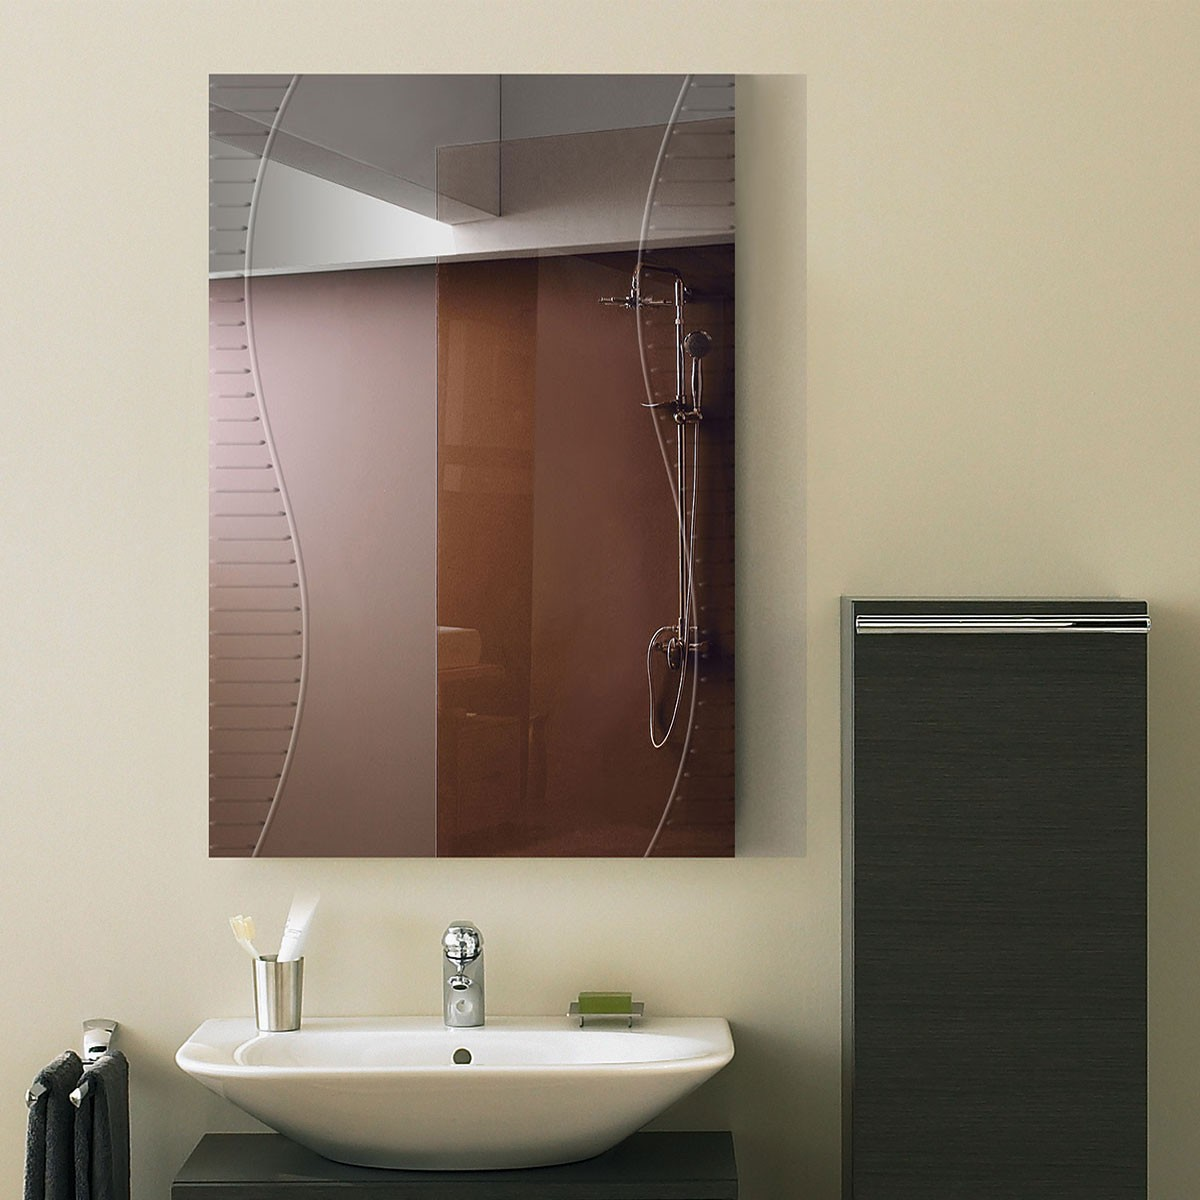 24 x 36 In. Wall-mounted Rectangle Bathroom Mirror (DK-OD-B068A)